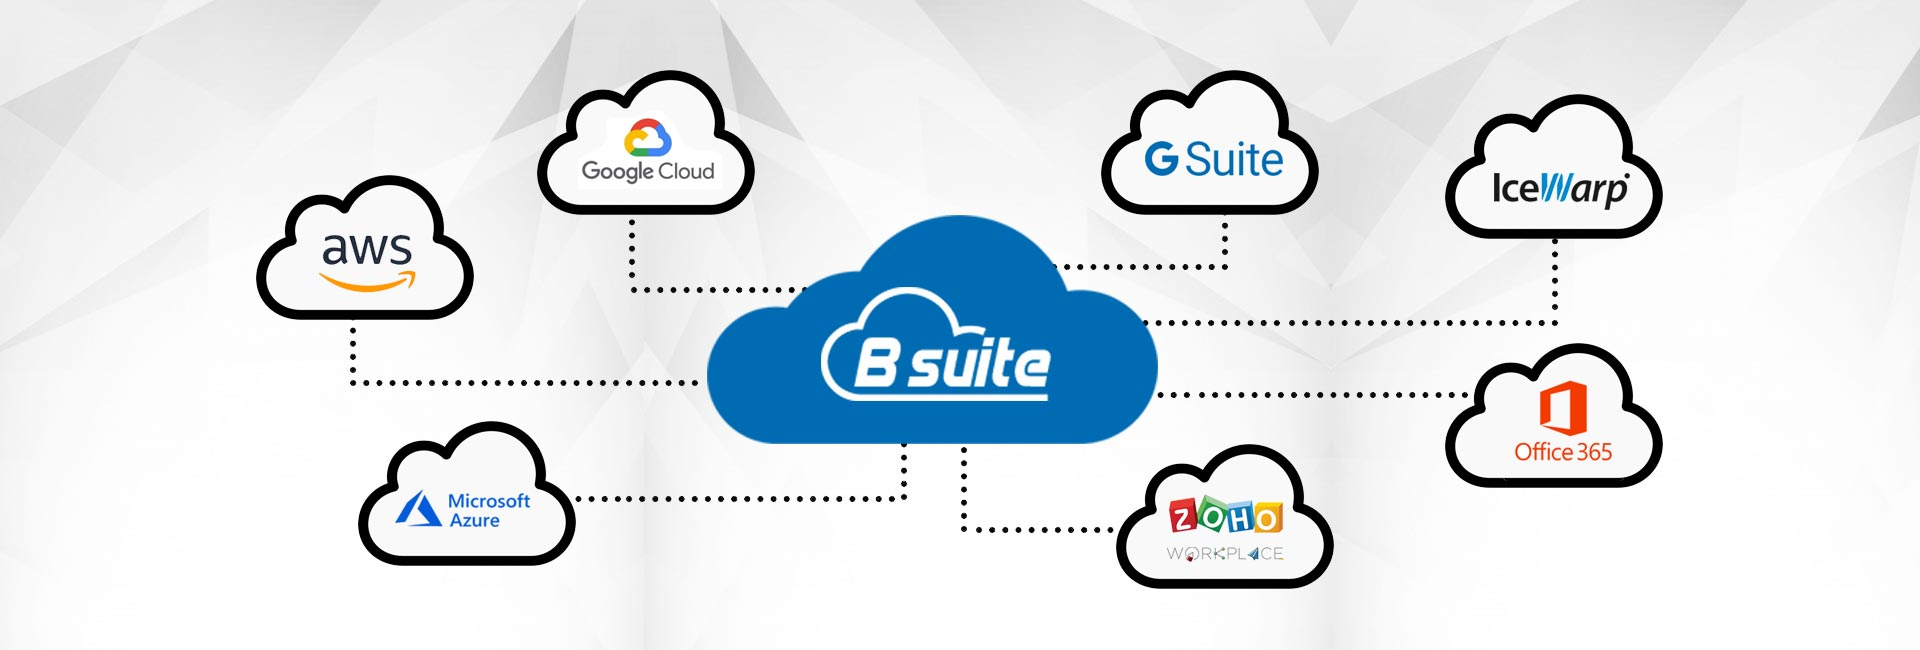 Email Services and Cloud Services